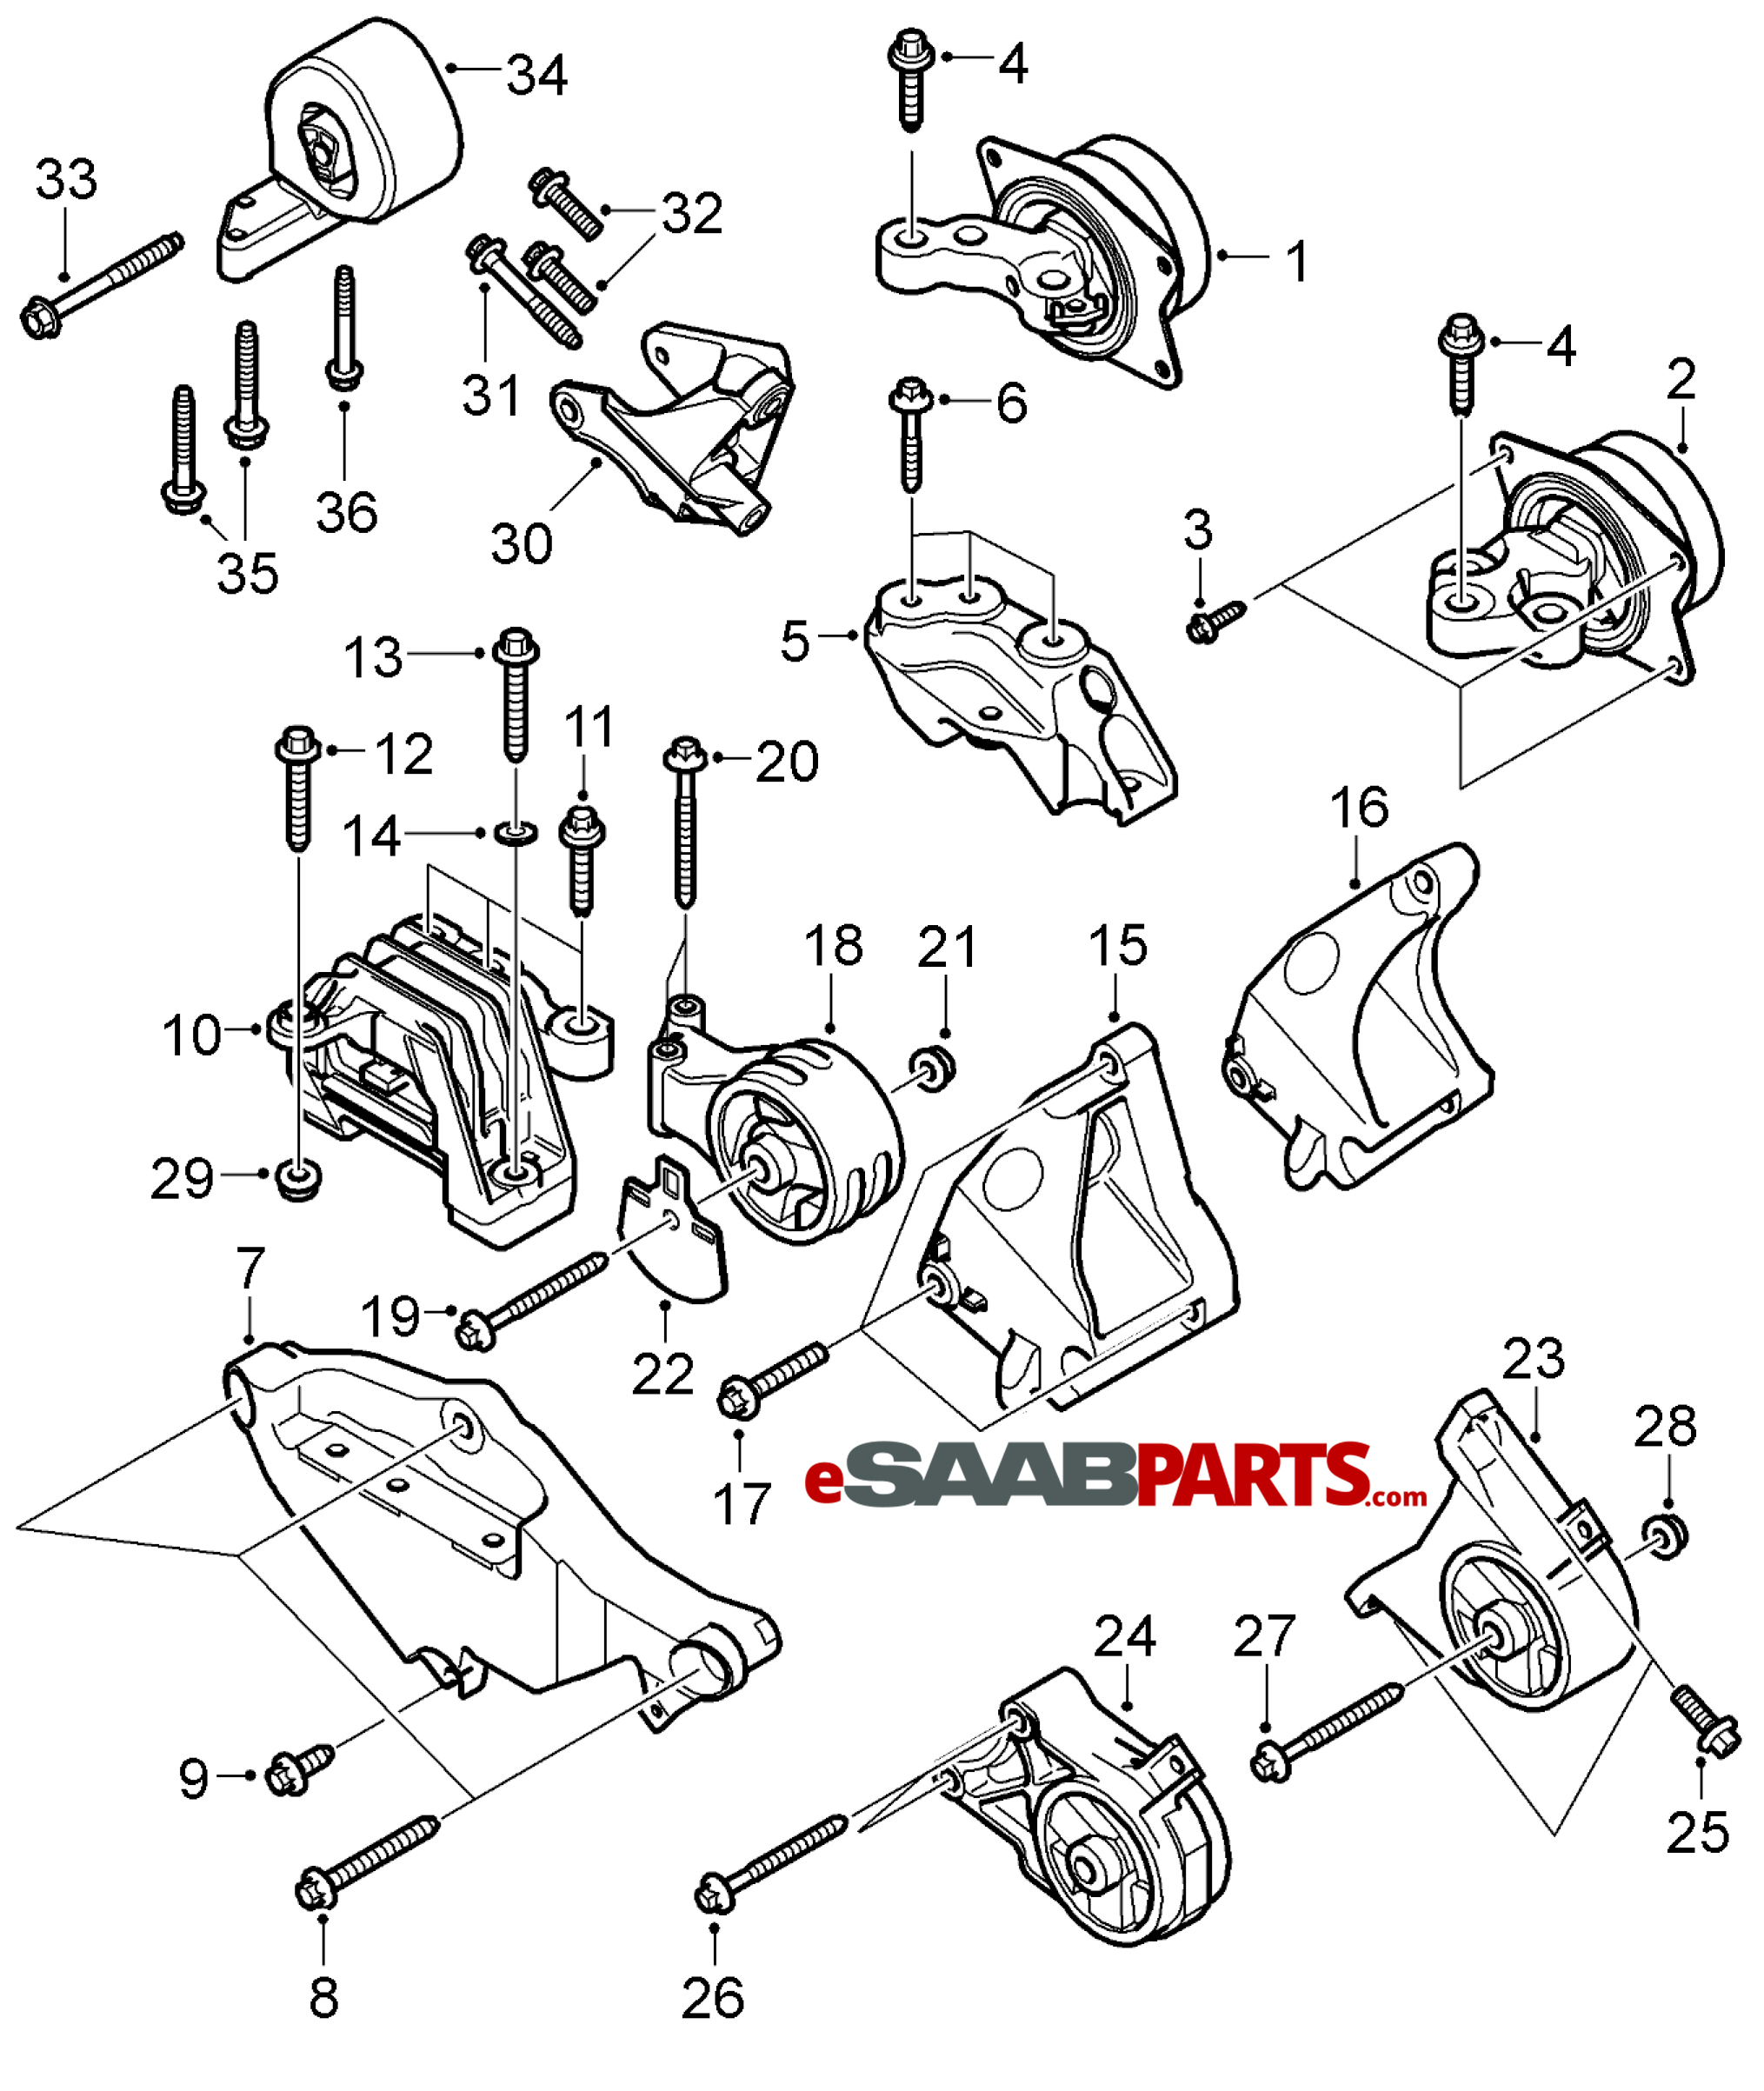 2001 Saab 9 3 Turbo Engine Diagram Trusted Wiring 5 V6 Mount Radio U2022 Tire Size